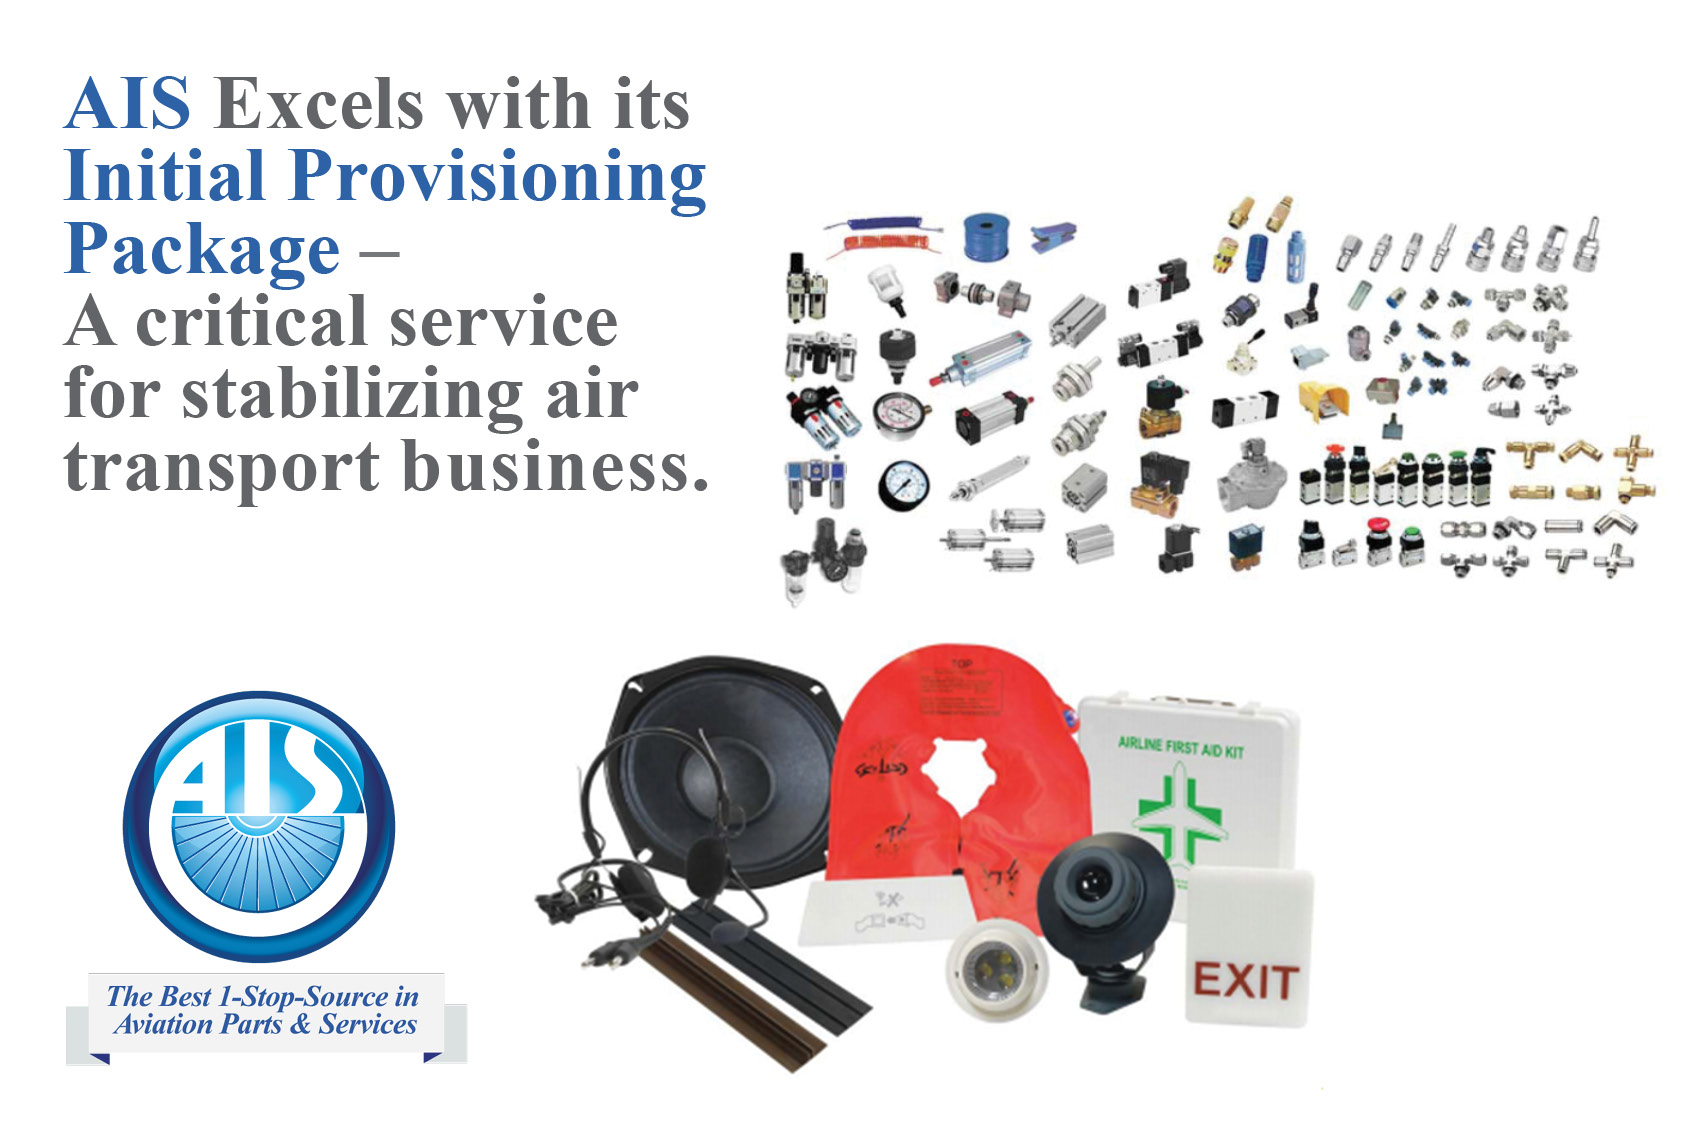 provide Initial Provisioning of Recommended Spare Parts List (RSPL) on contract basis as well as post - Initial Provisioning warranty administration